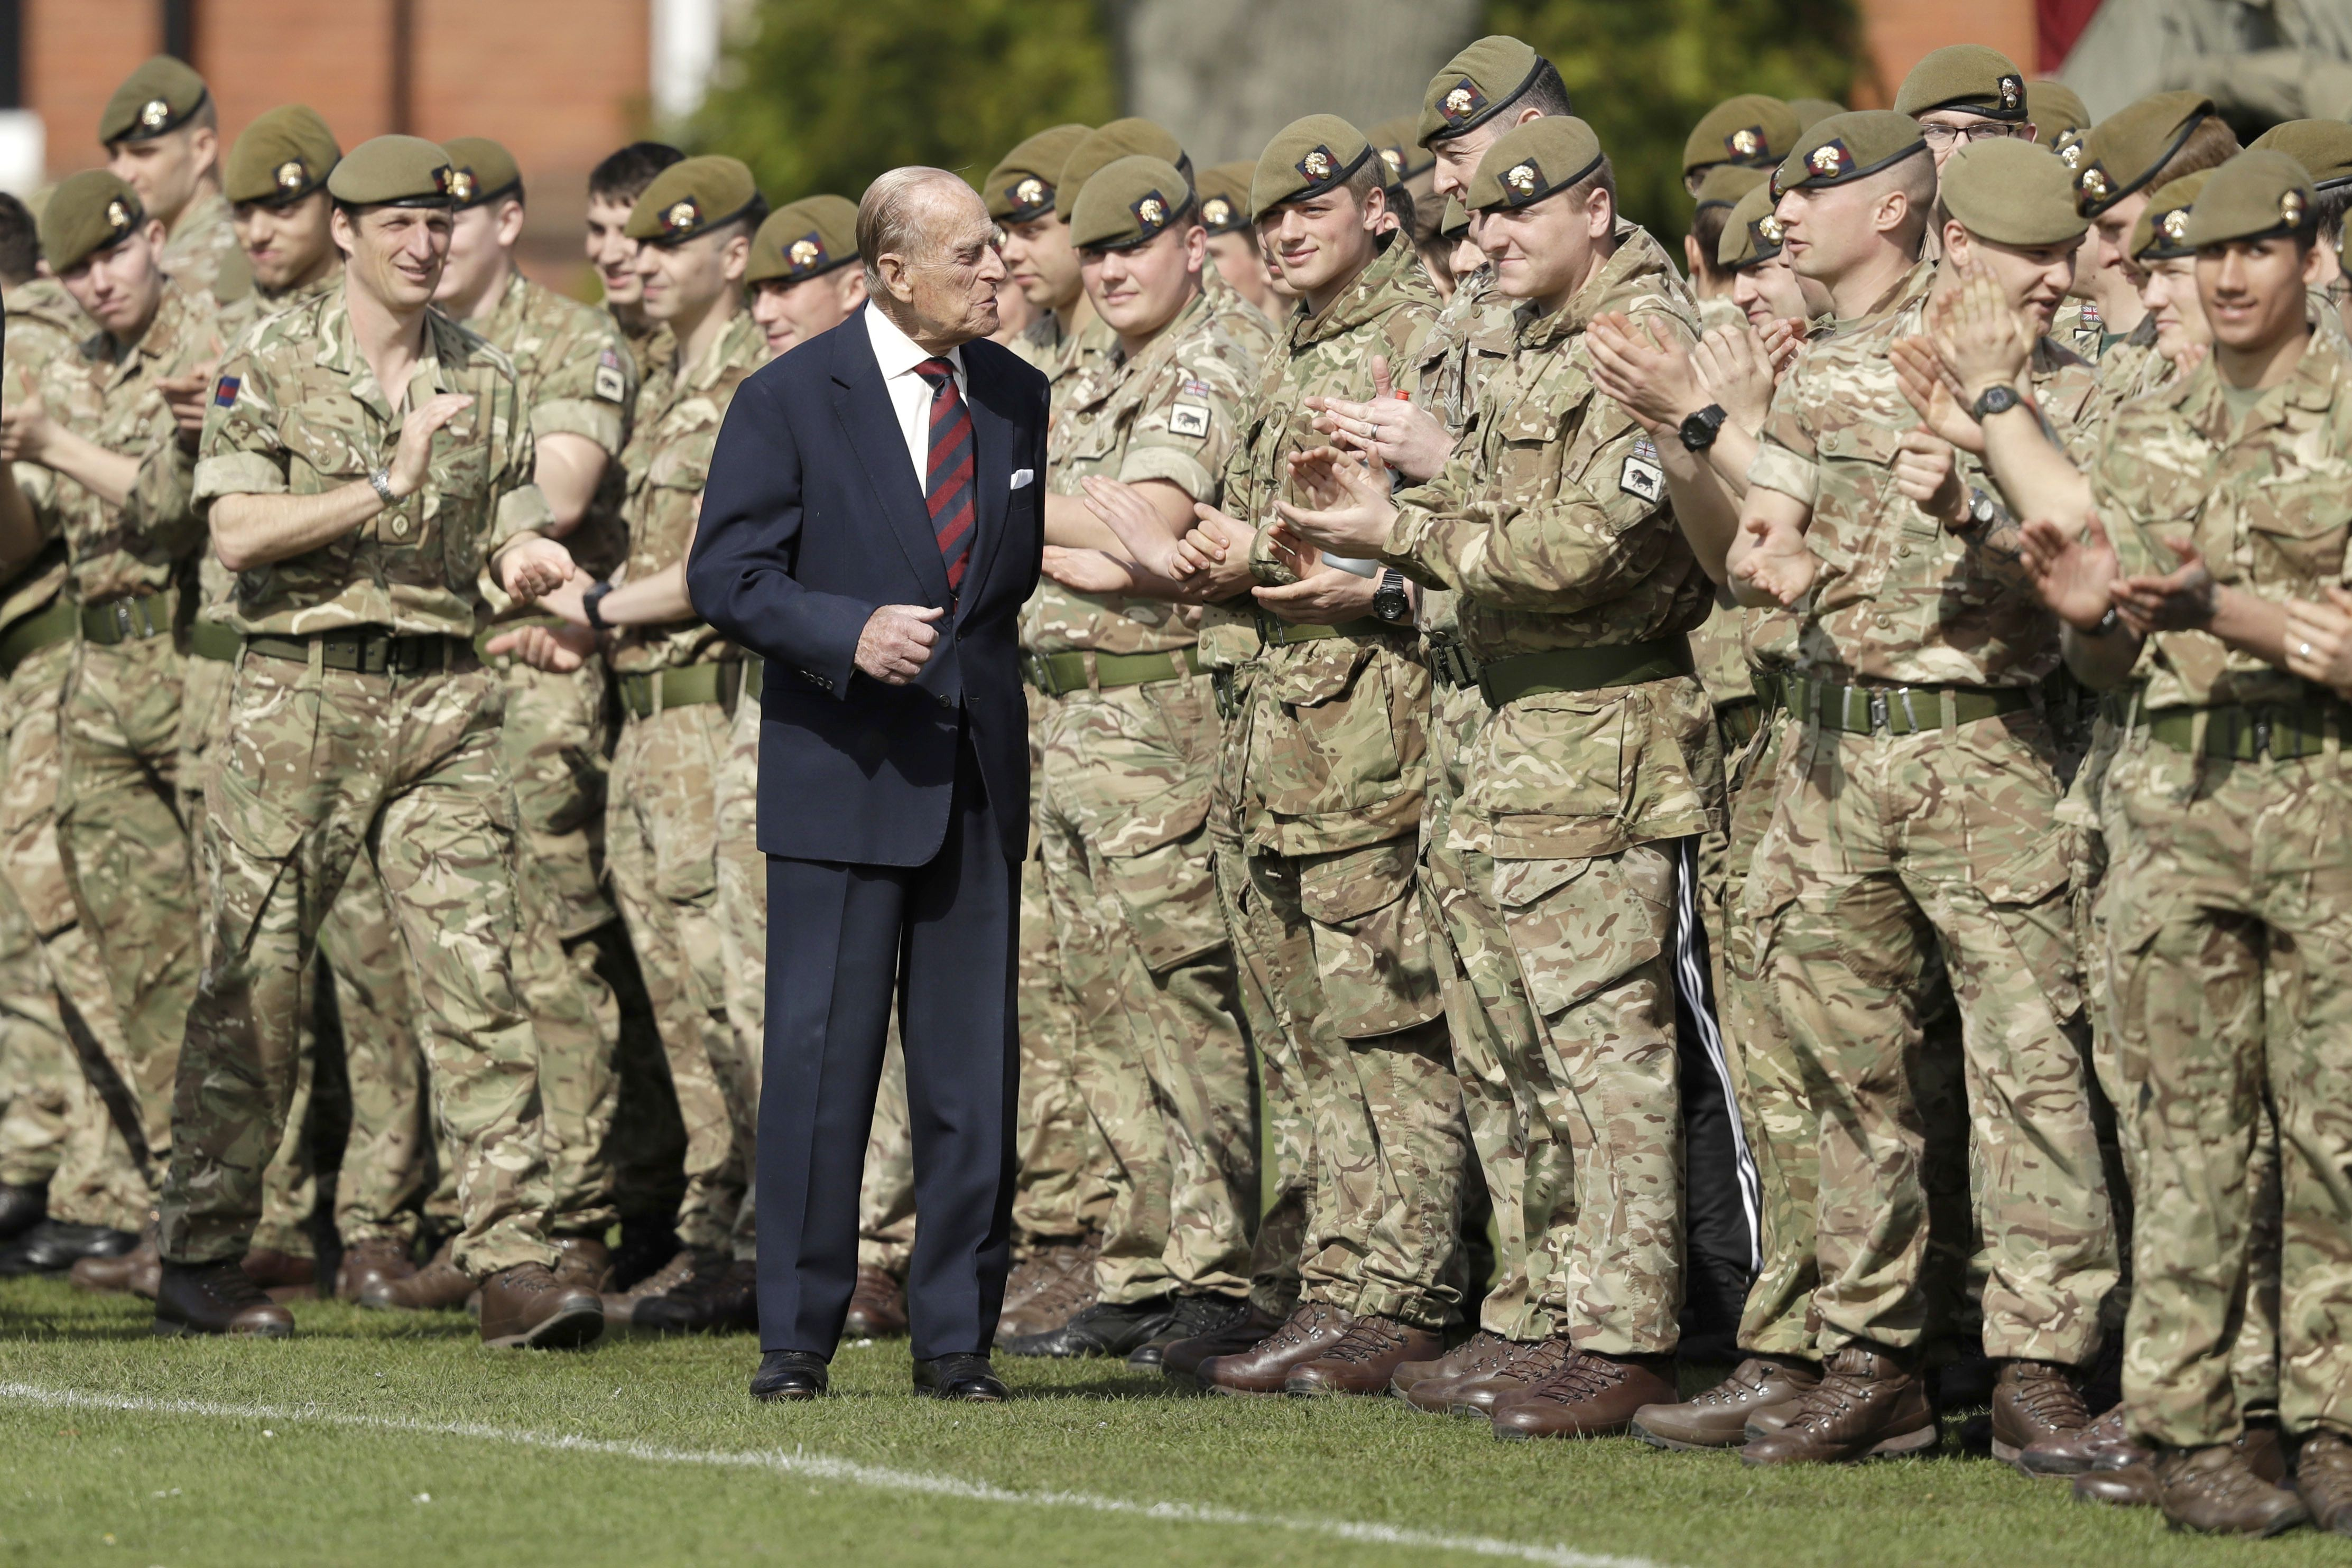 Prince Philip, in his capacity of Colonel, Grenadier Guards, chats with members of the 1st Battalion Grenadier Guards as they applaud the final whistle from the sidelines, of the Manchester Cup inter-company football match at Lille BarracksManchester Cup inter-company football match, Lille Barracks, Aldershot, UK - 30 Mar 2017The Duke of Edinburgh on Thursday presented the Manchester Trophy to the winners of the Manchester Cup, met Sergeants' in their Mess and stayed for lunch in the Officers' Mess